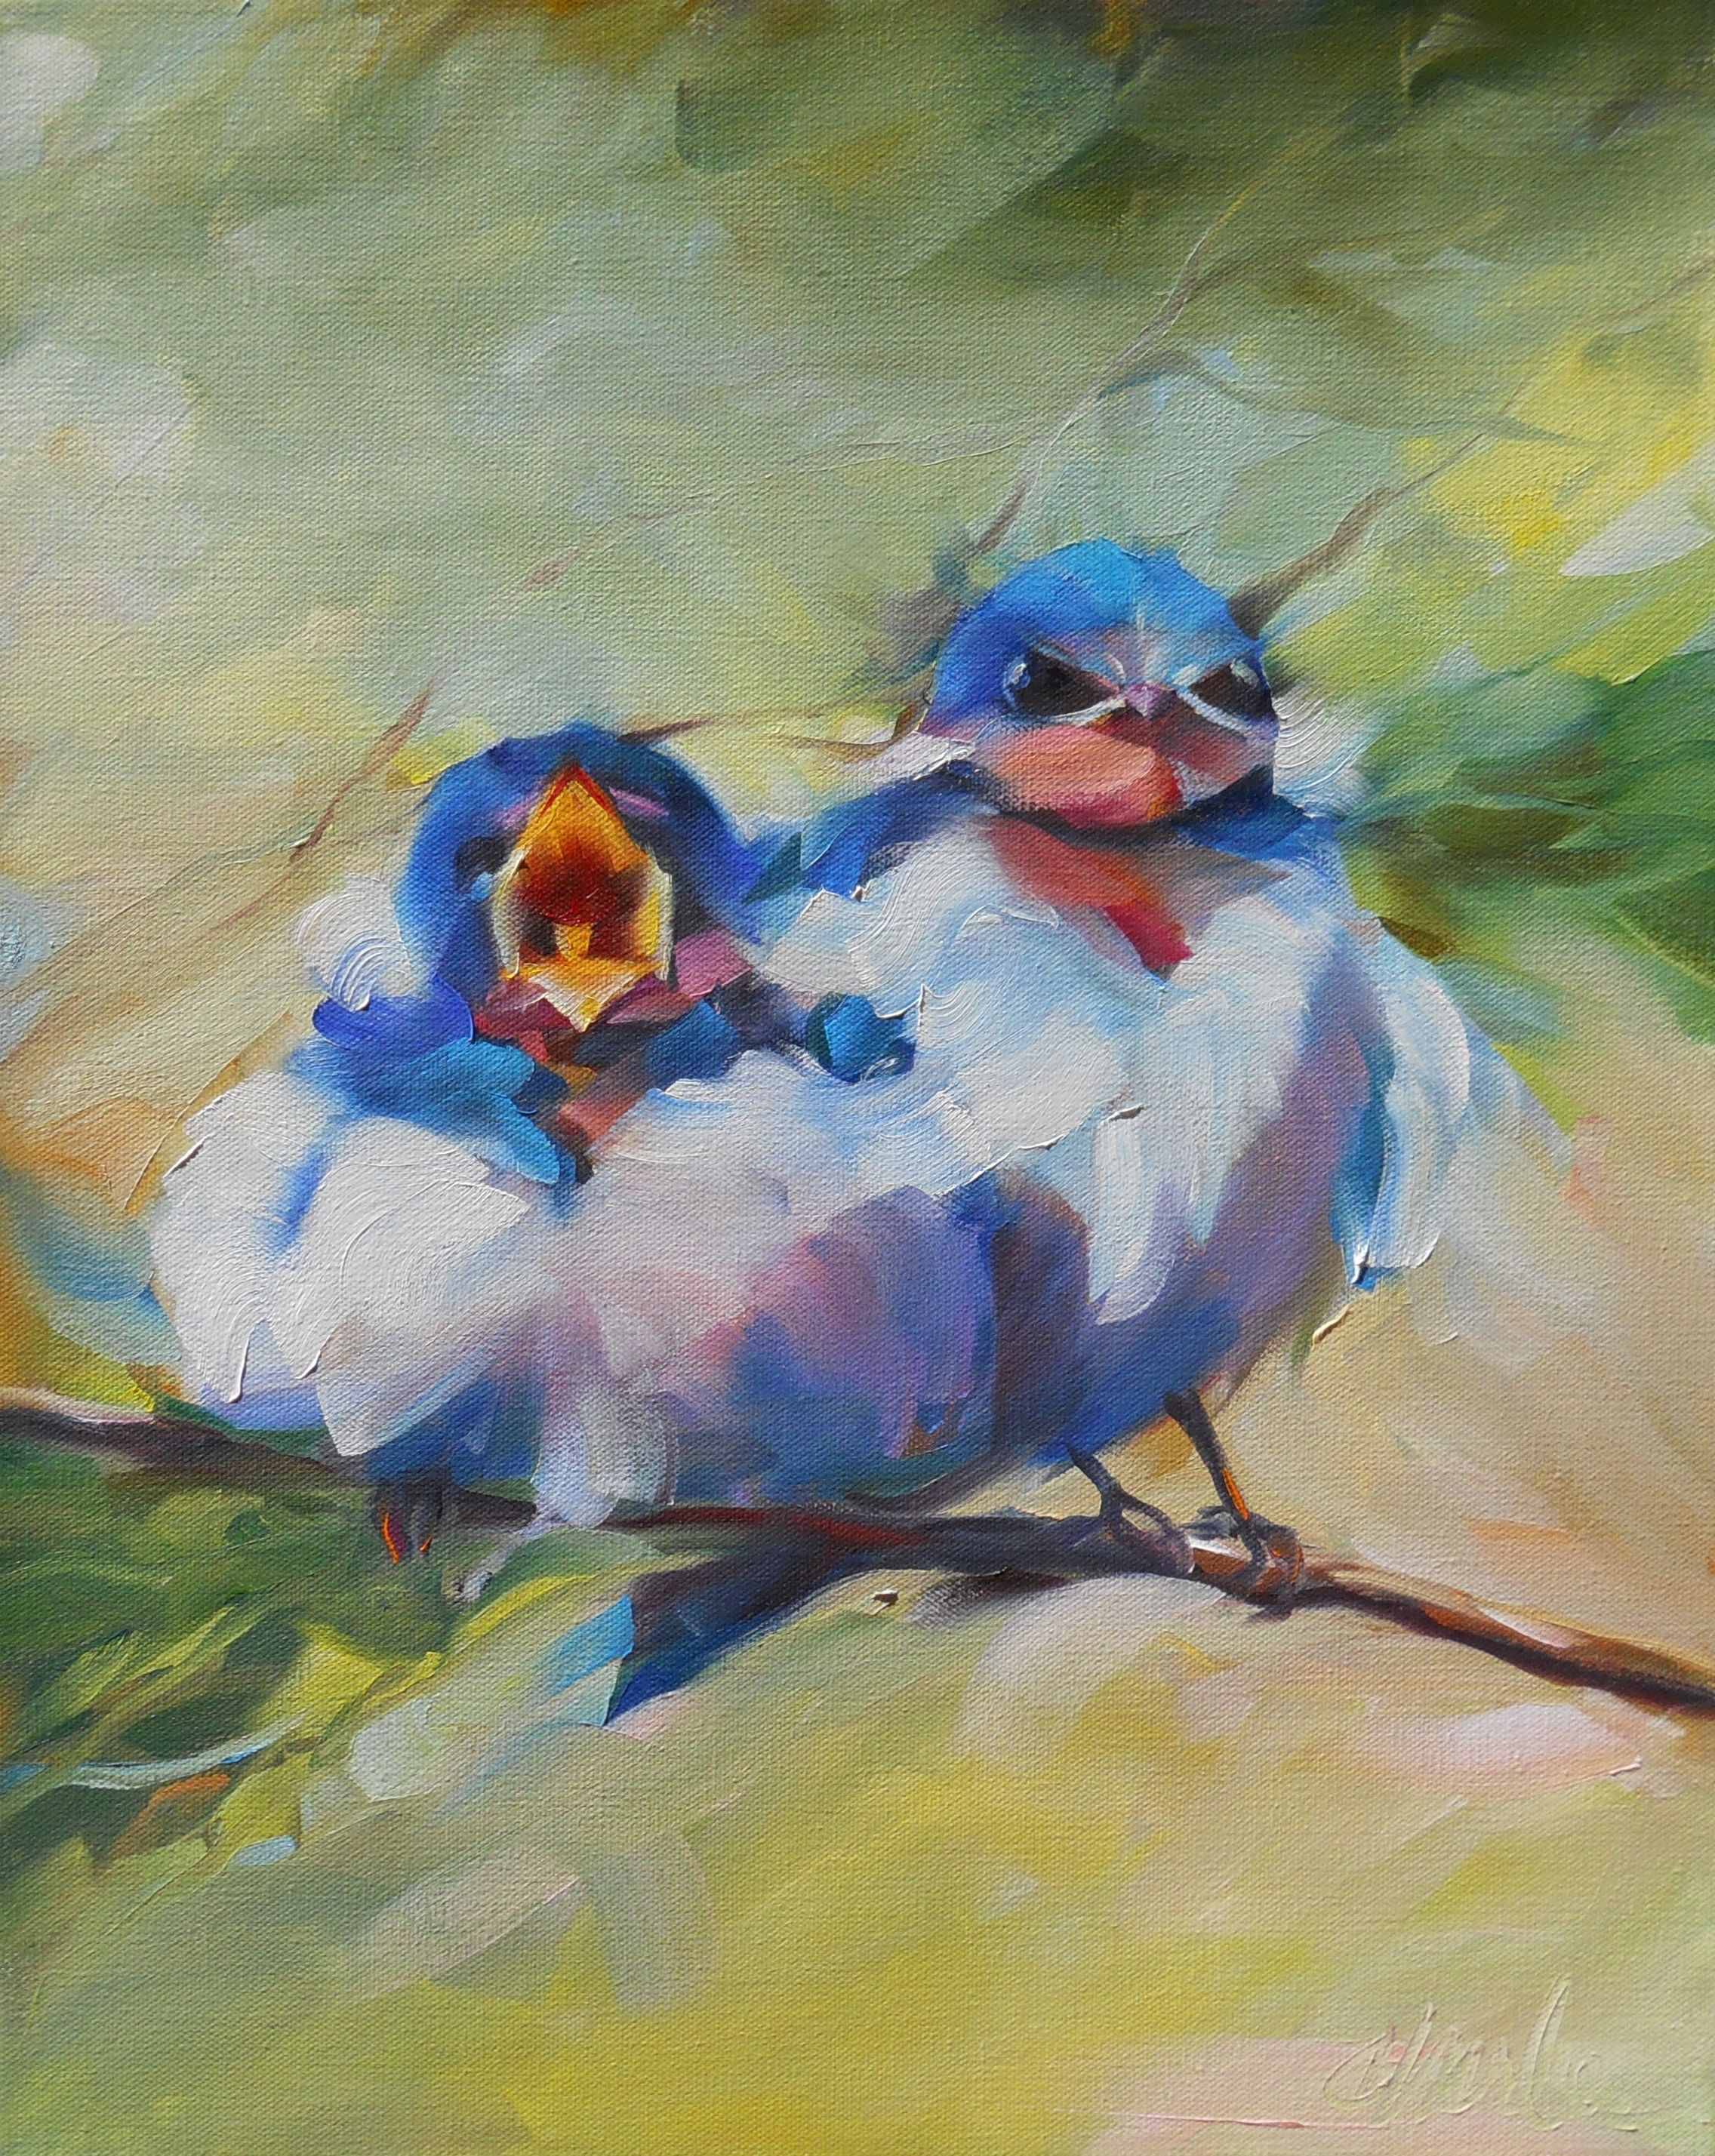 """""""MOM!!!"""" by Beth Charles.  Oil on gallery wrapped canvas.  16""""x20""""  bethcharlesart.com"""